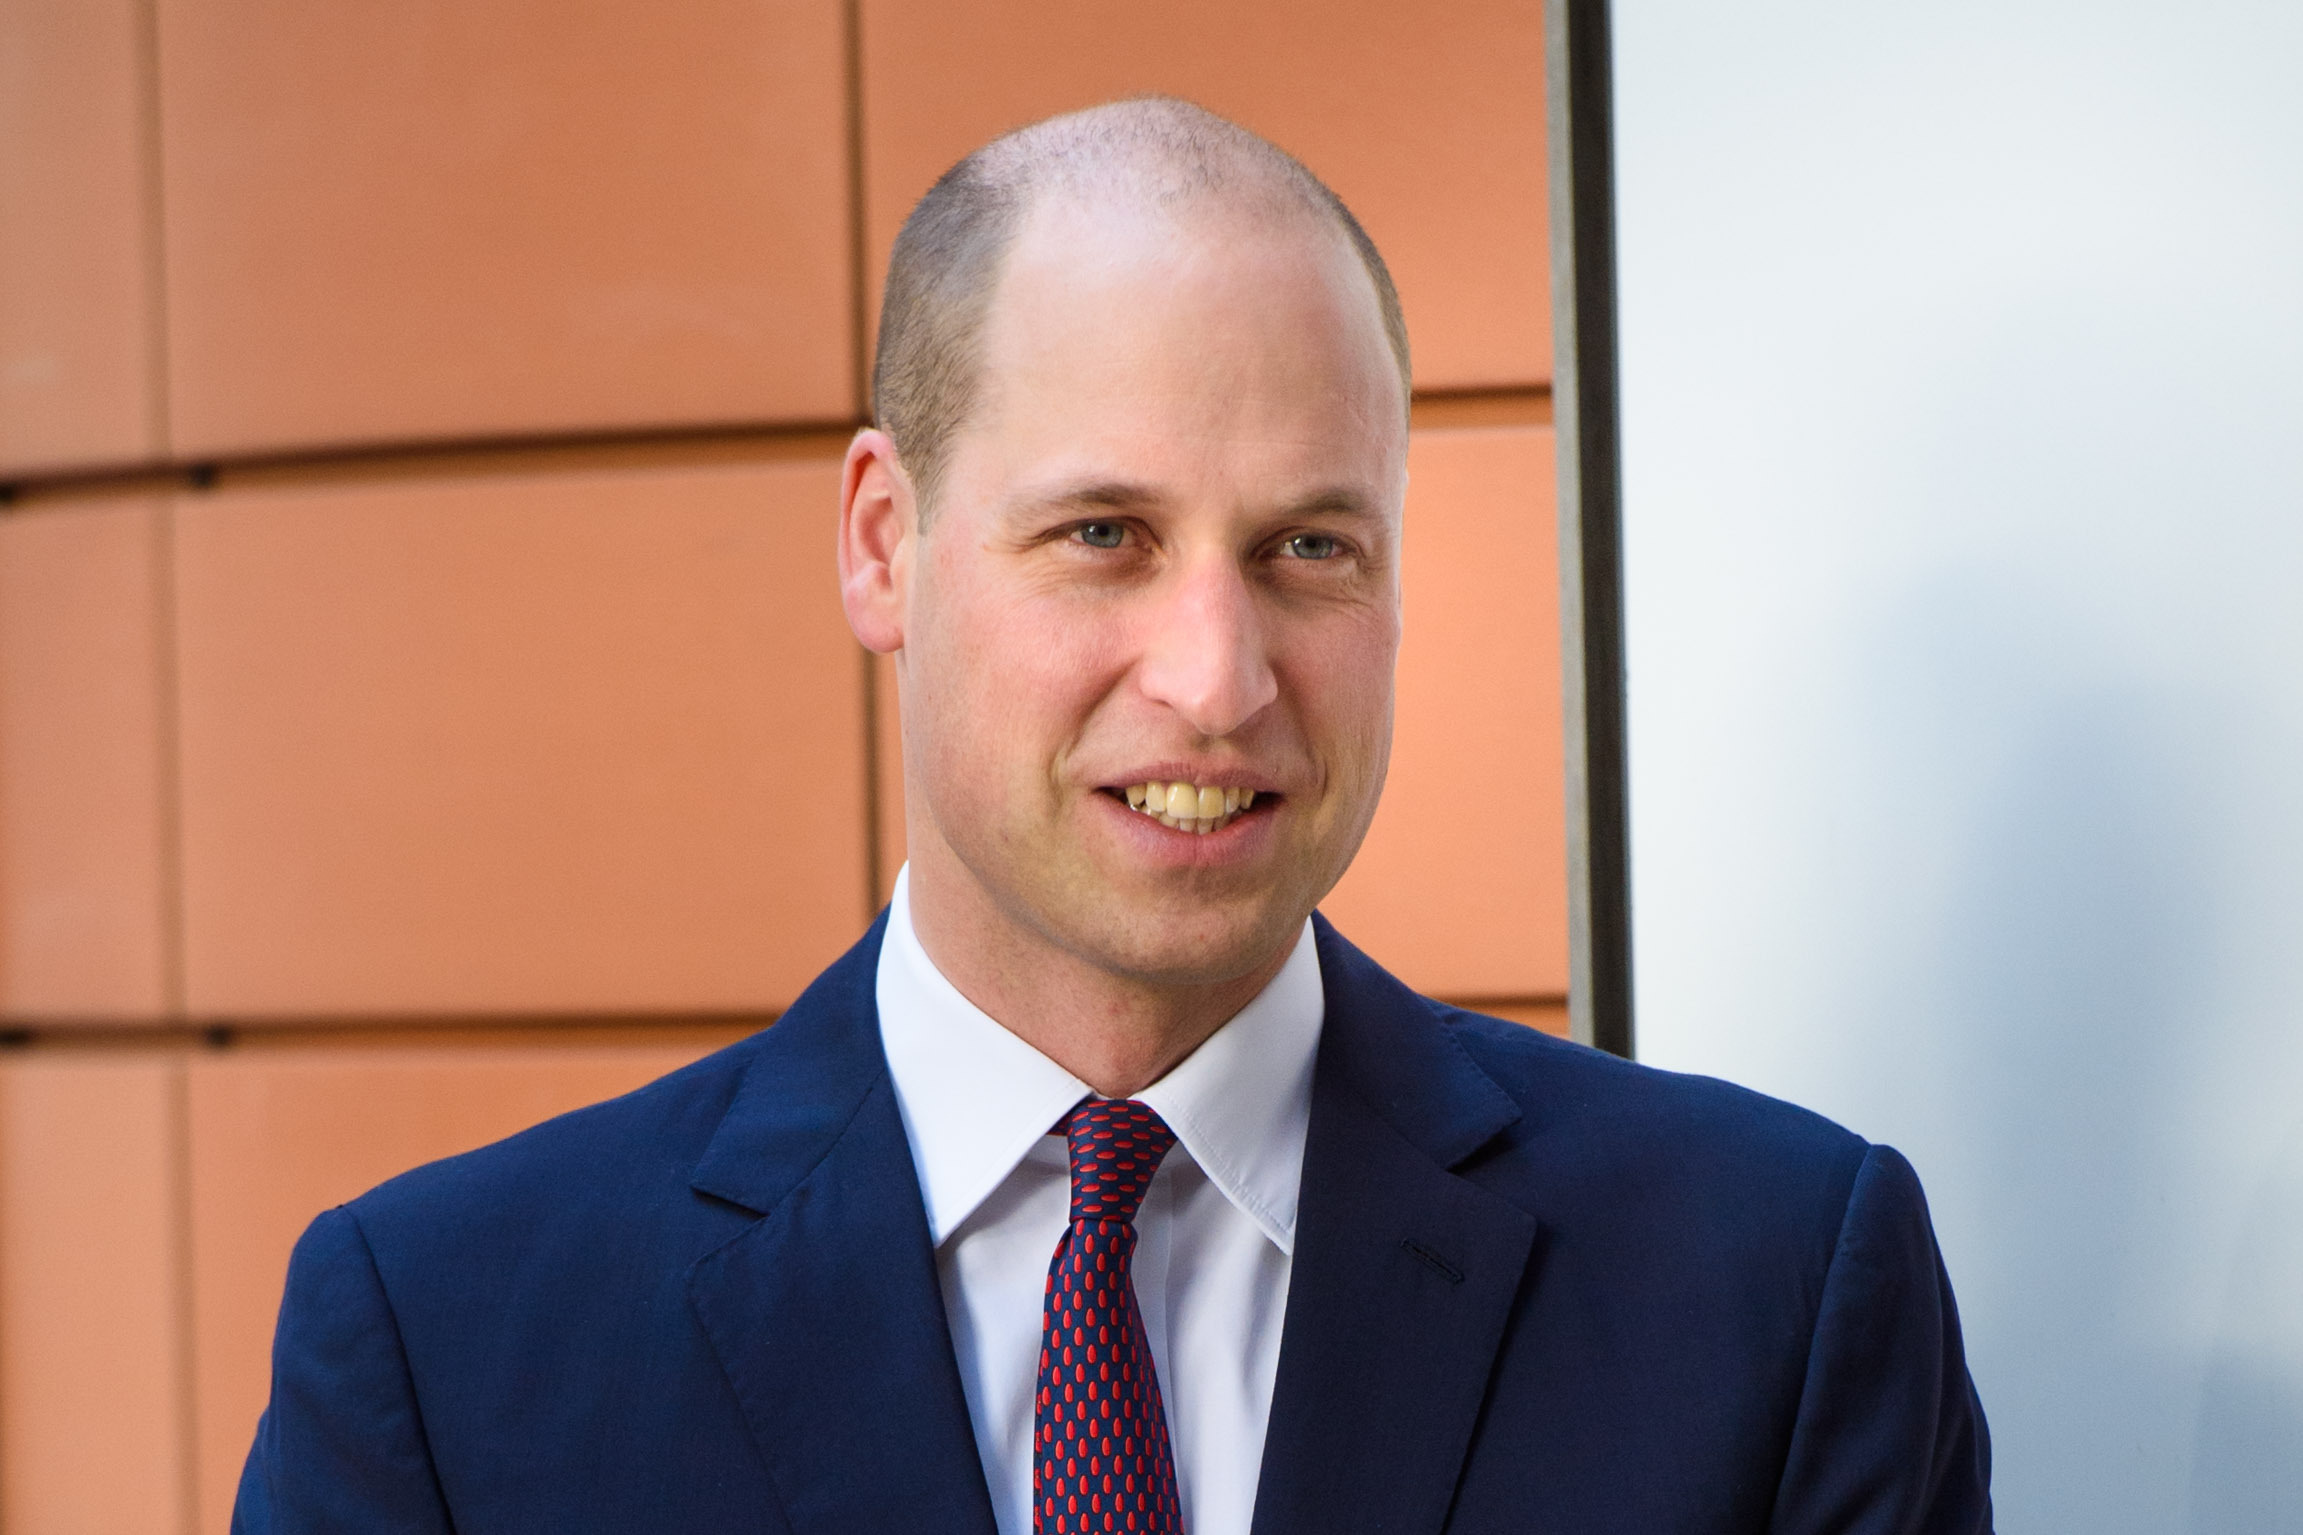 Prince William sports shaved head on royal visit